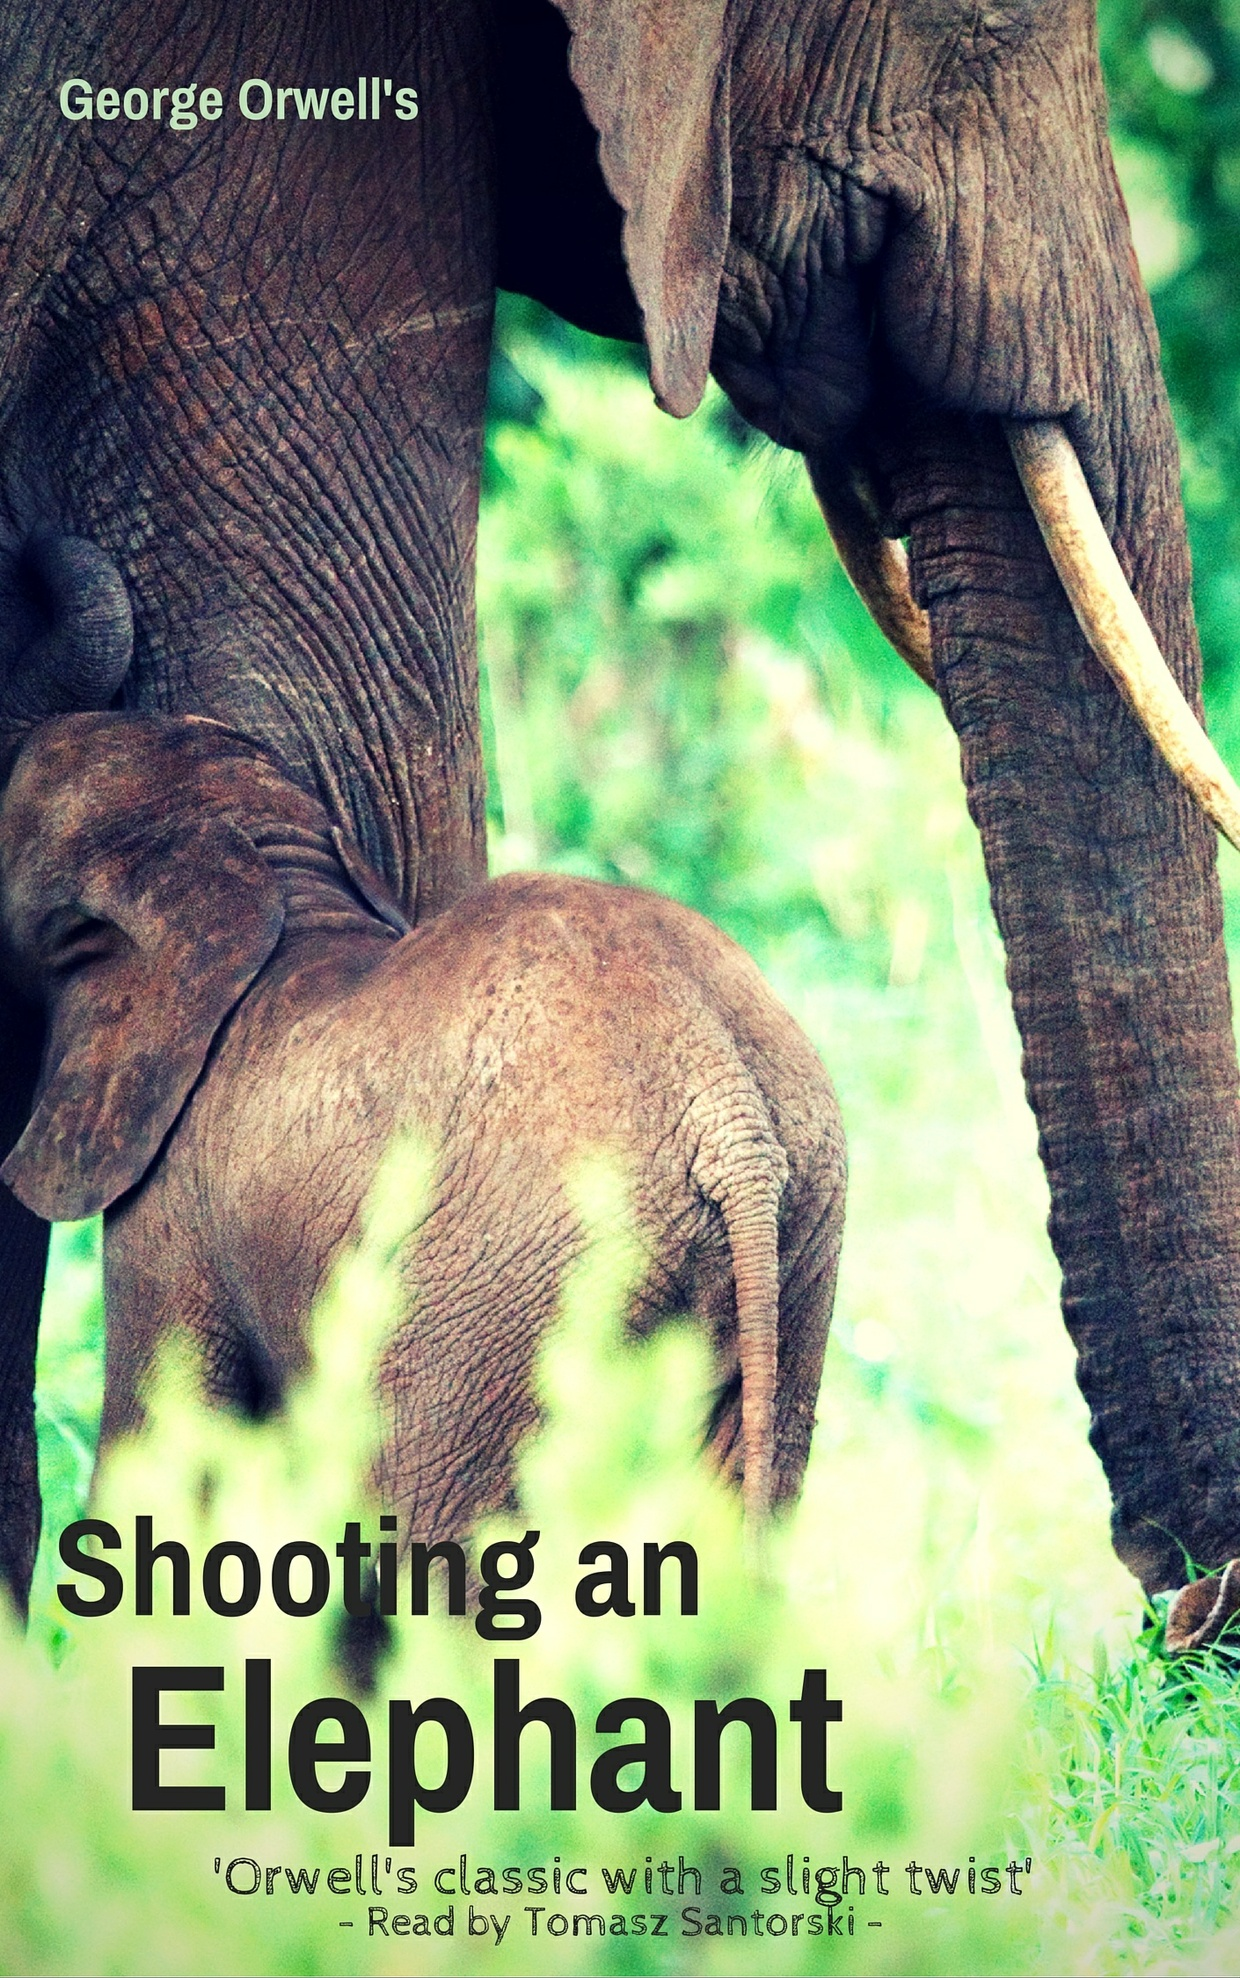 an analysis of tyranny in shooting an elephant by george orwell